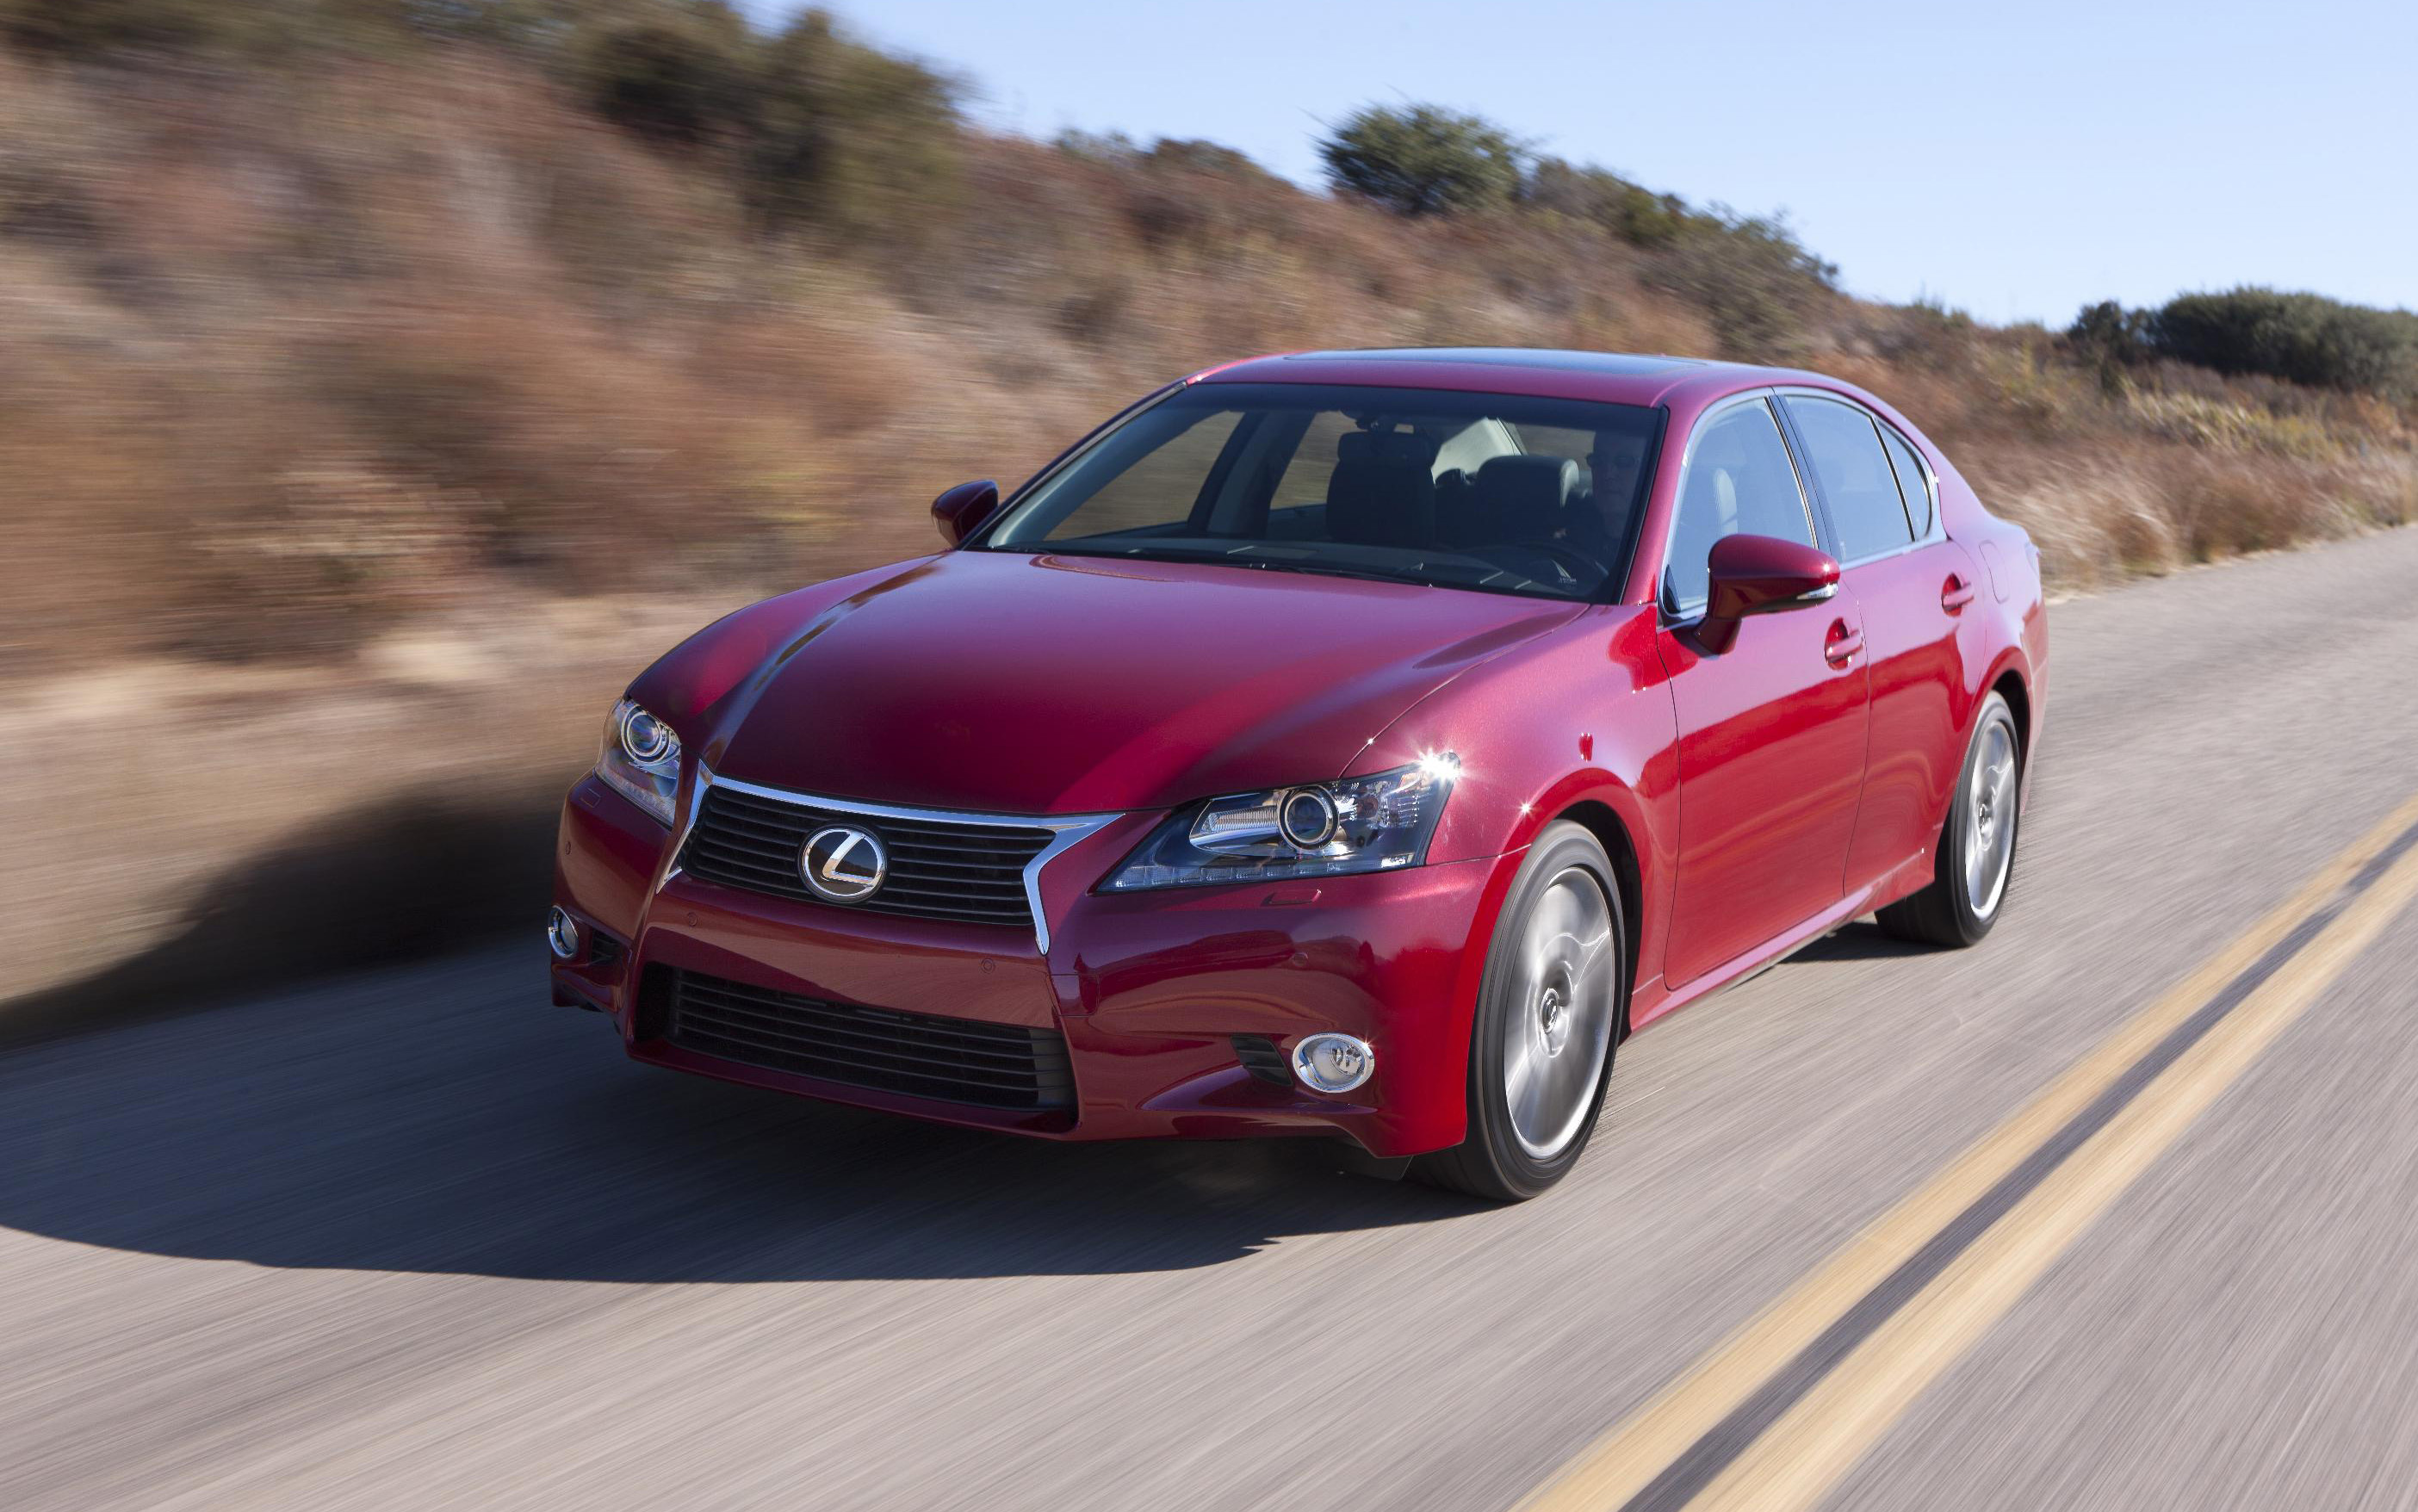 2013 Lexus GS 250 Debuts in China, Should it Come Here? - Motor Trend